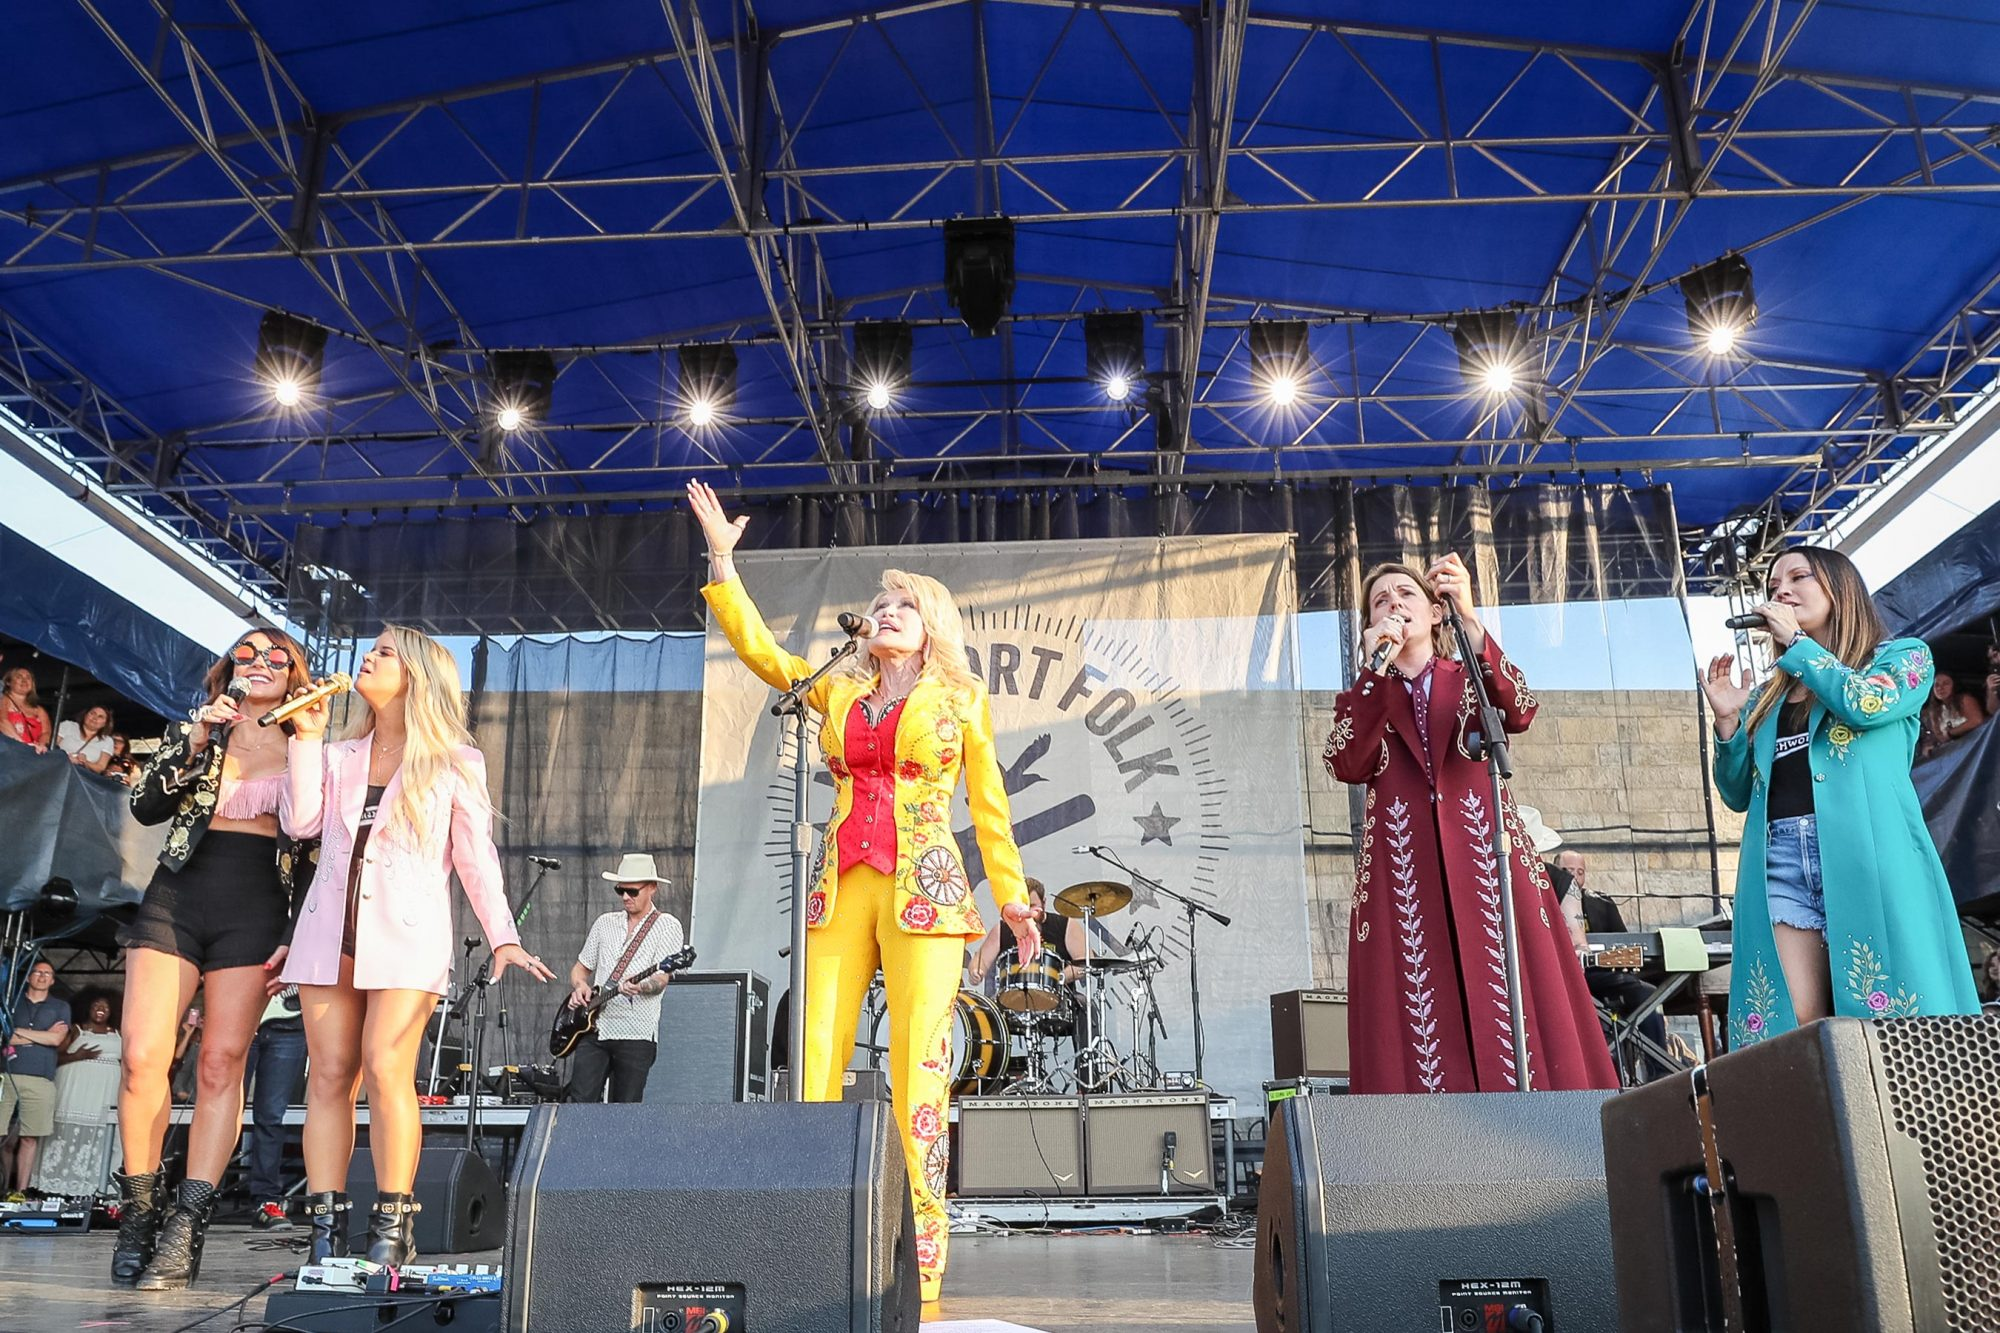 NEWPORT, RHODE ISLAND - JULY 27: (L-R) Amanda Shires, Maren Morris, Dolly Parton, Brandi Carlile and Natalie Hemby performs during the Newport Folk Festival 2019, the 60th anniversary, at Fort Adams State Park on July 27, 2019 in Newport, Rhode Island. (Photo by Douglas Mason/WireImage)